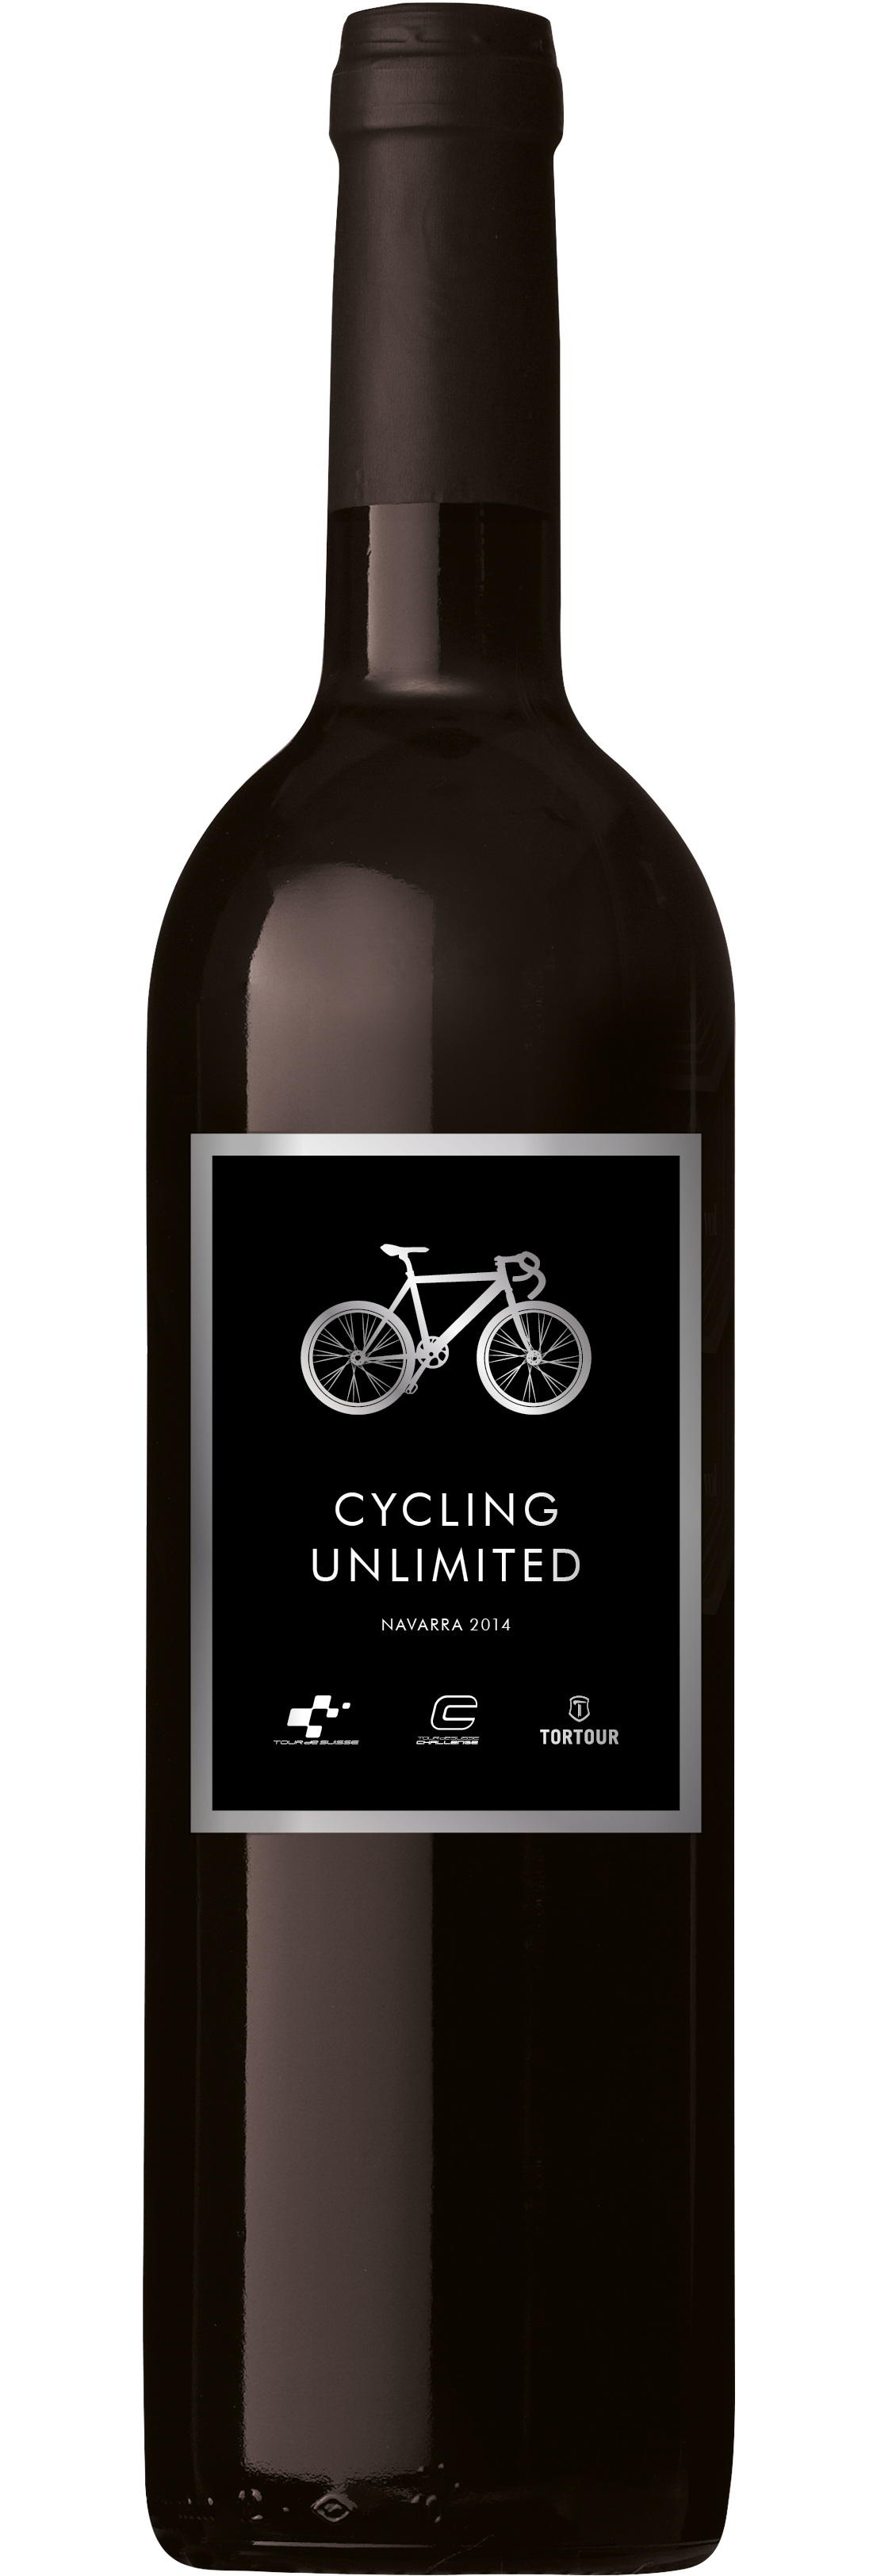 Cycling Unlimited 2014